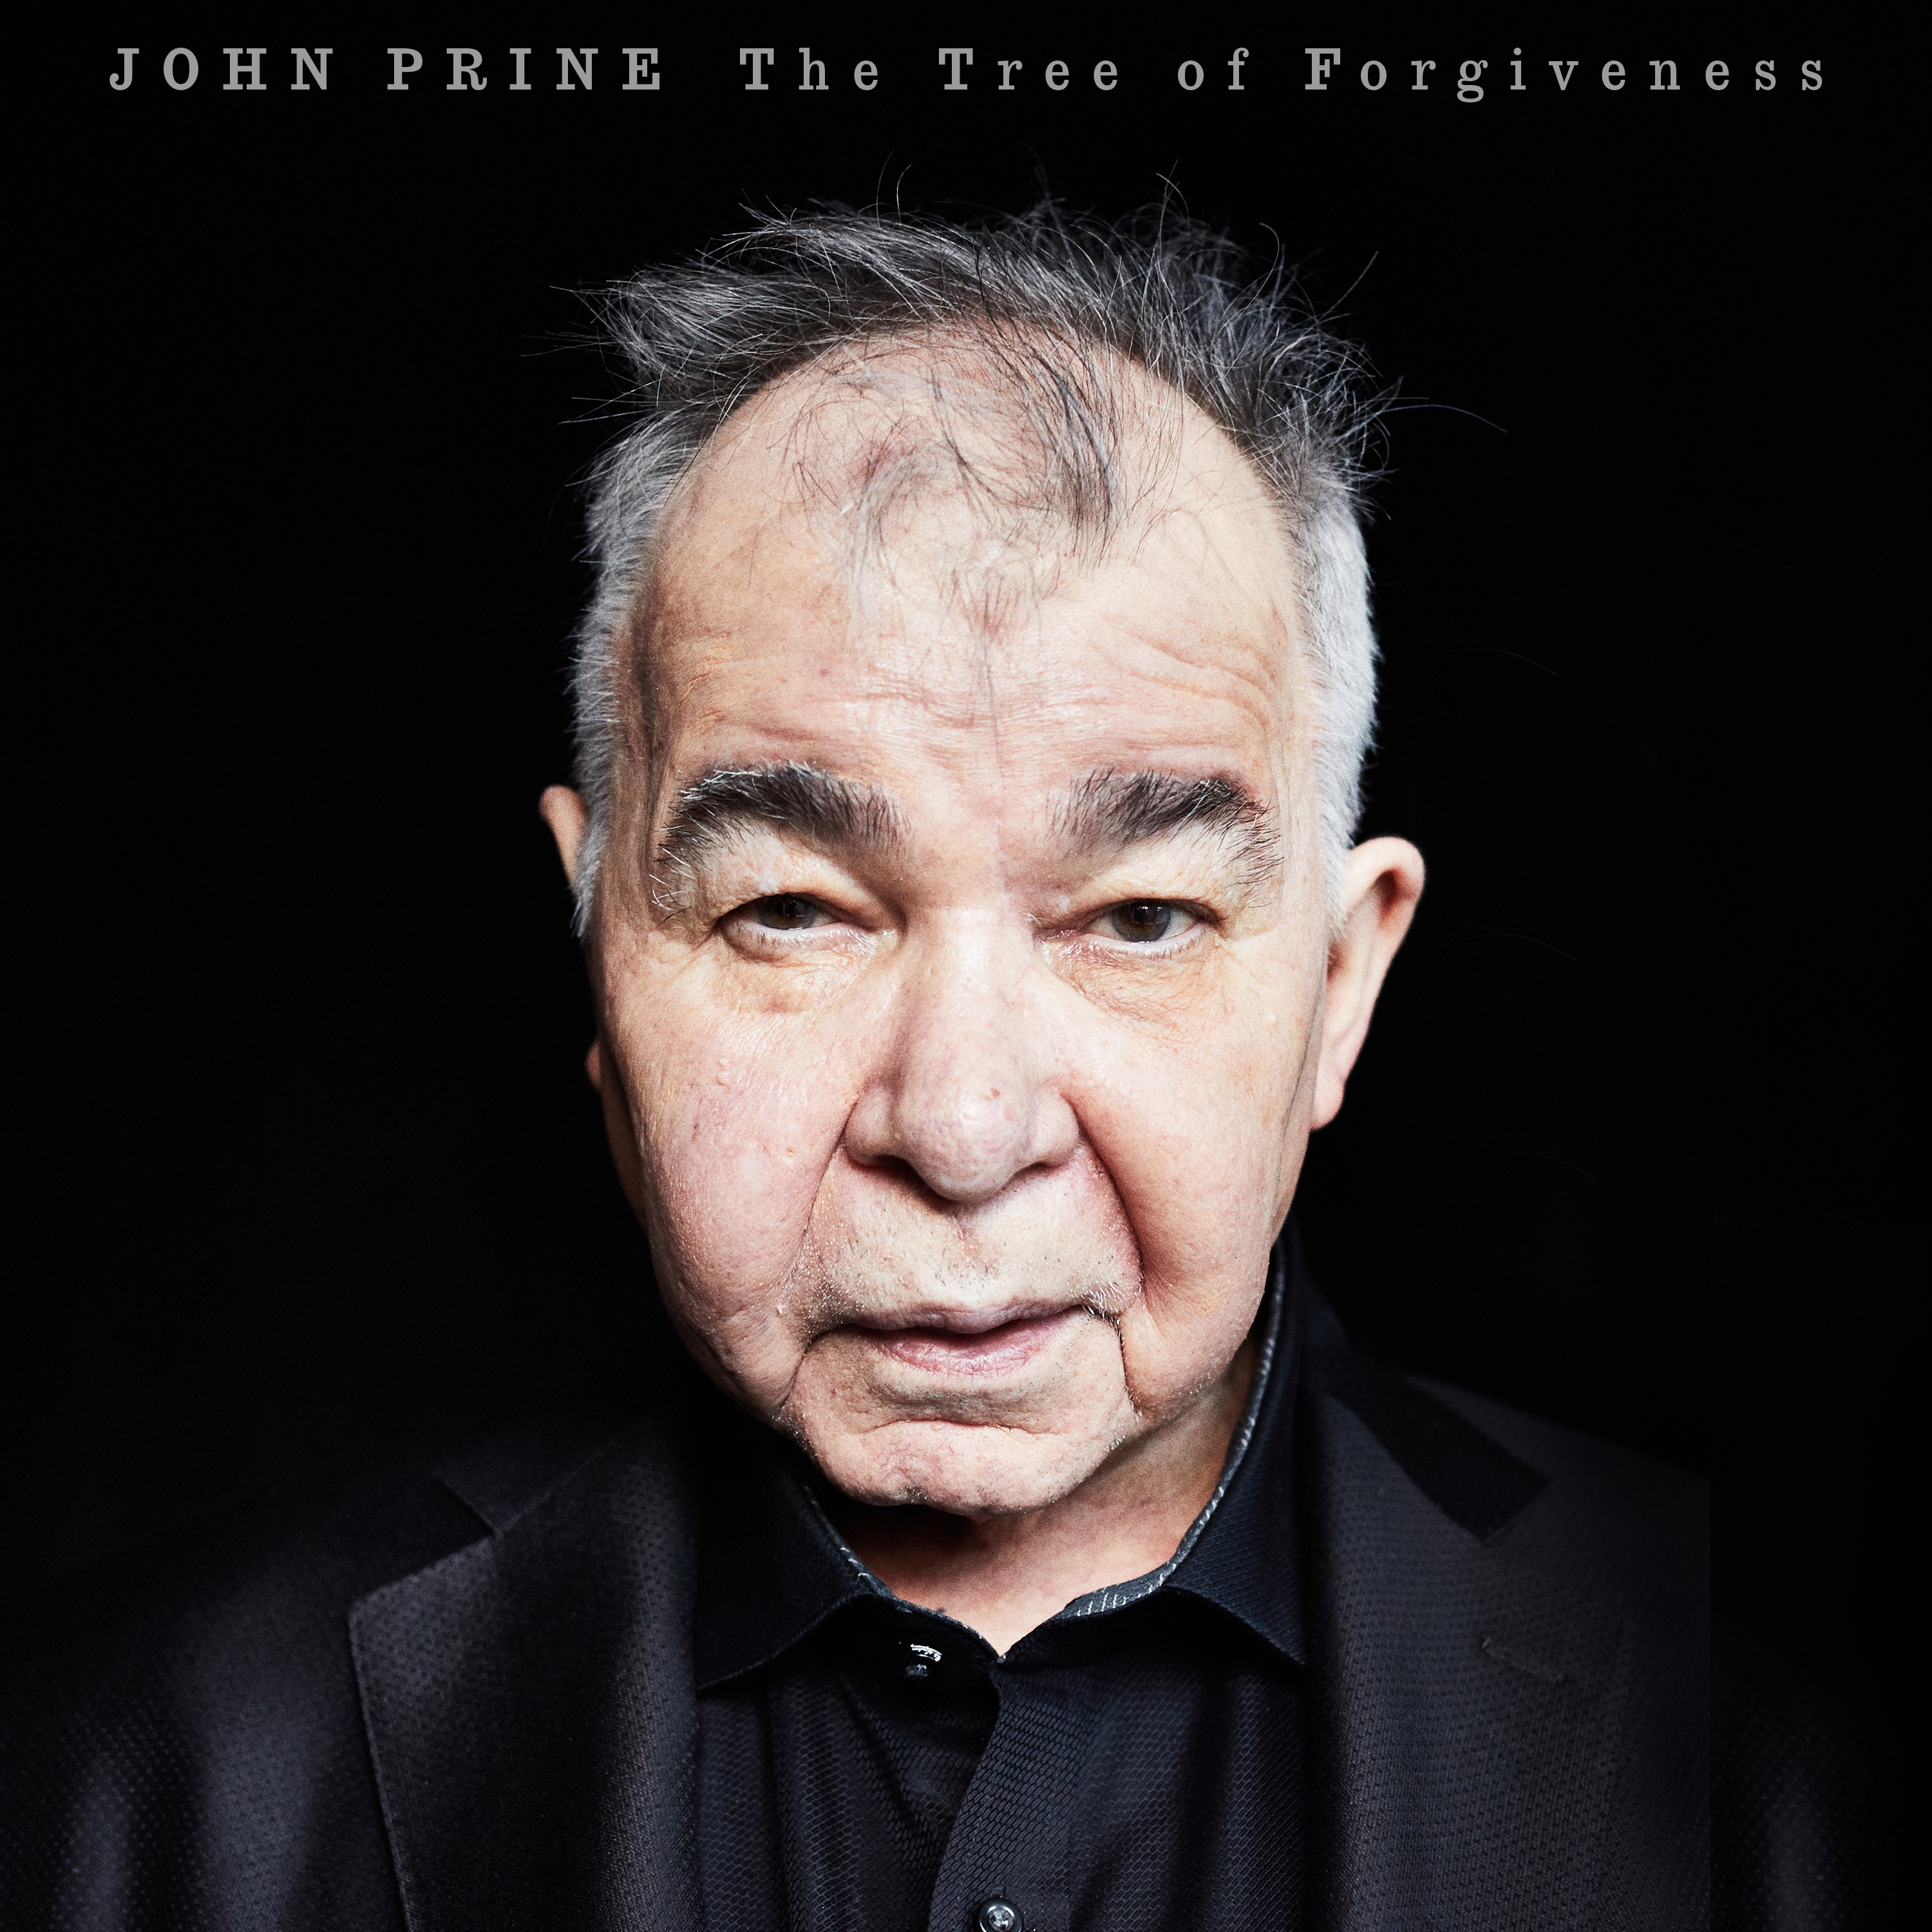 John Prine´s new album is ´Tree Of Forgiveness.´ He played the Merriam Theater with Kurt Vile on Saturday.